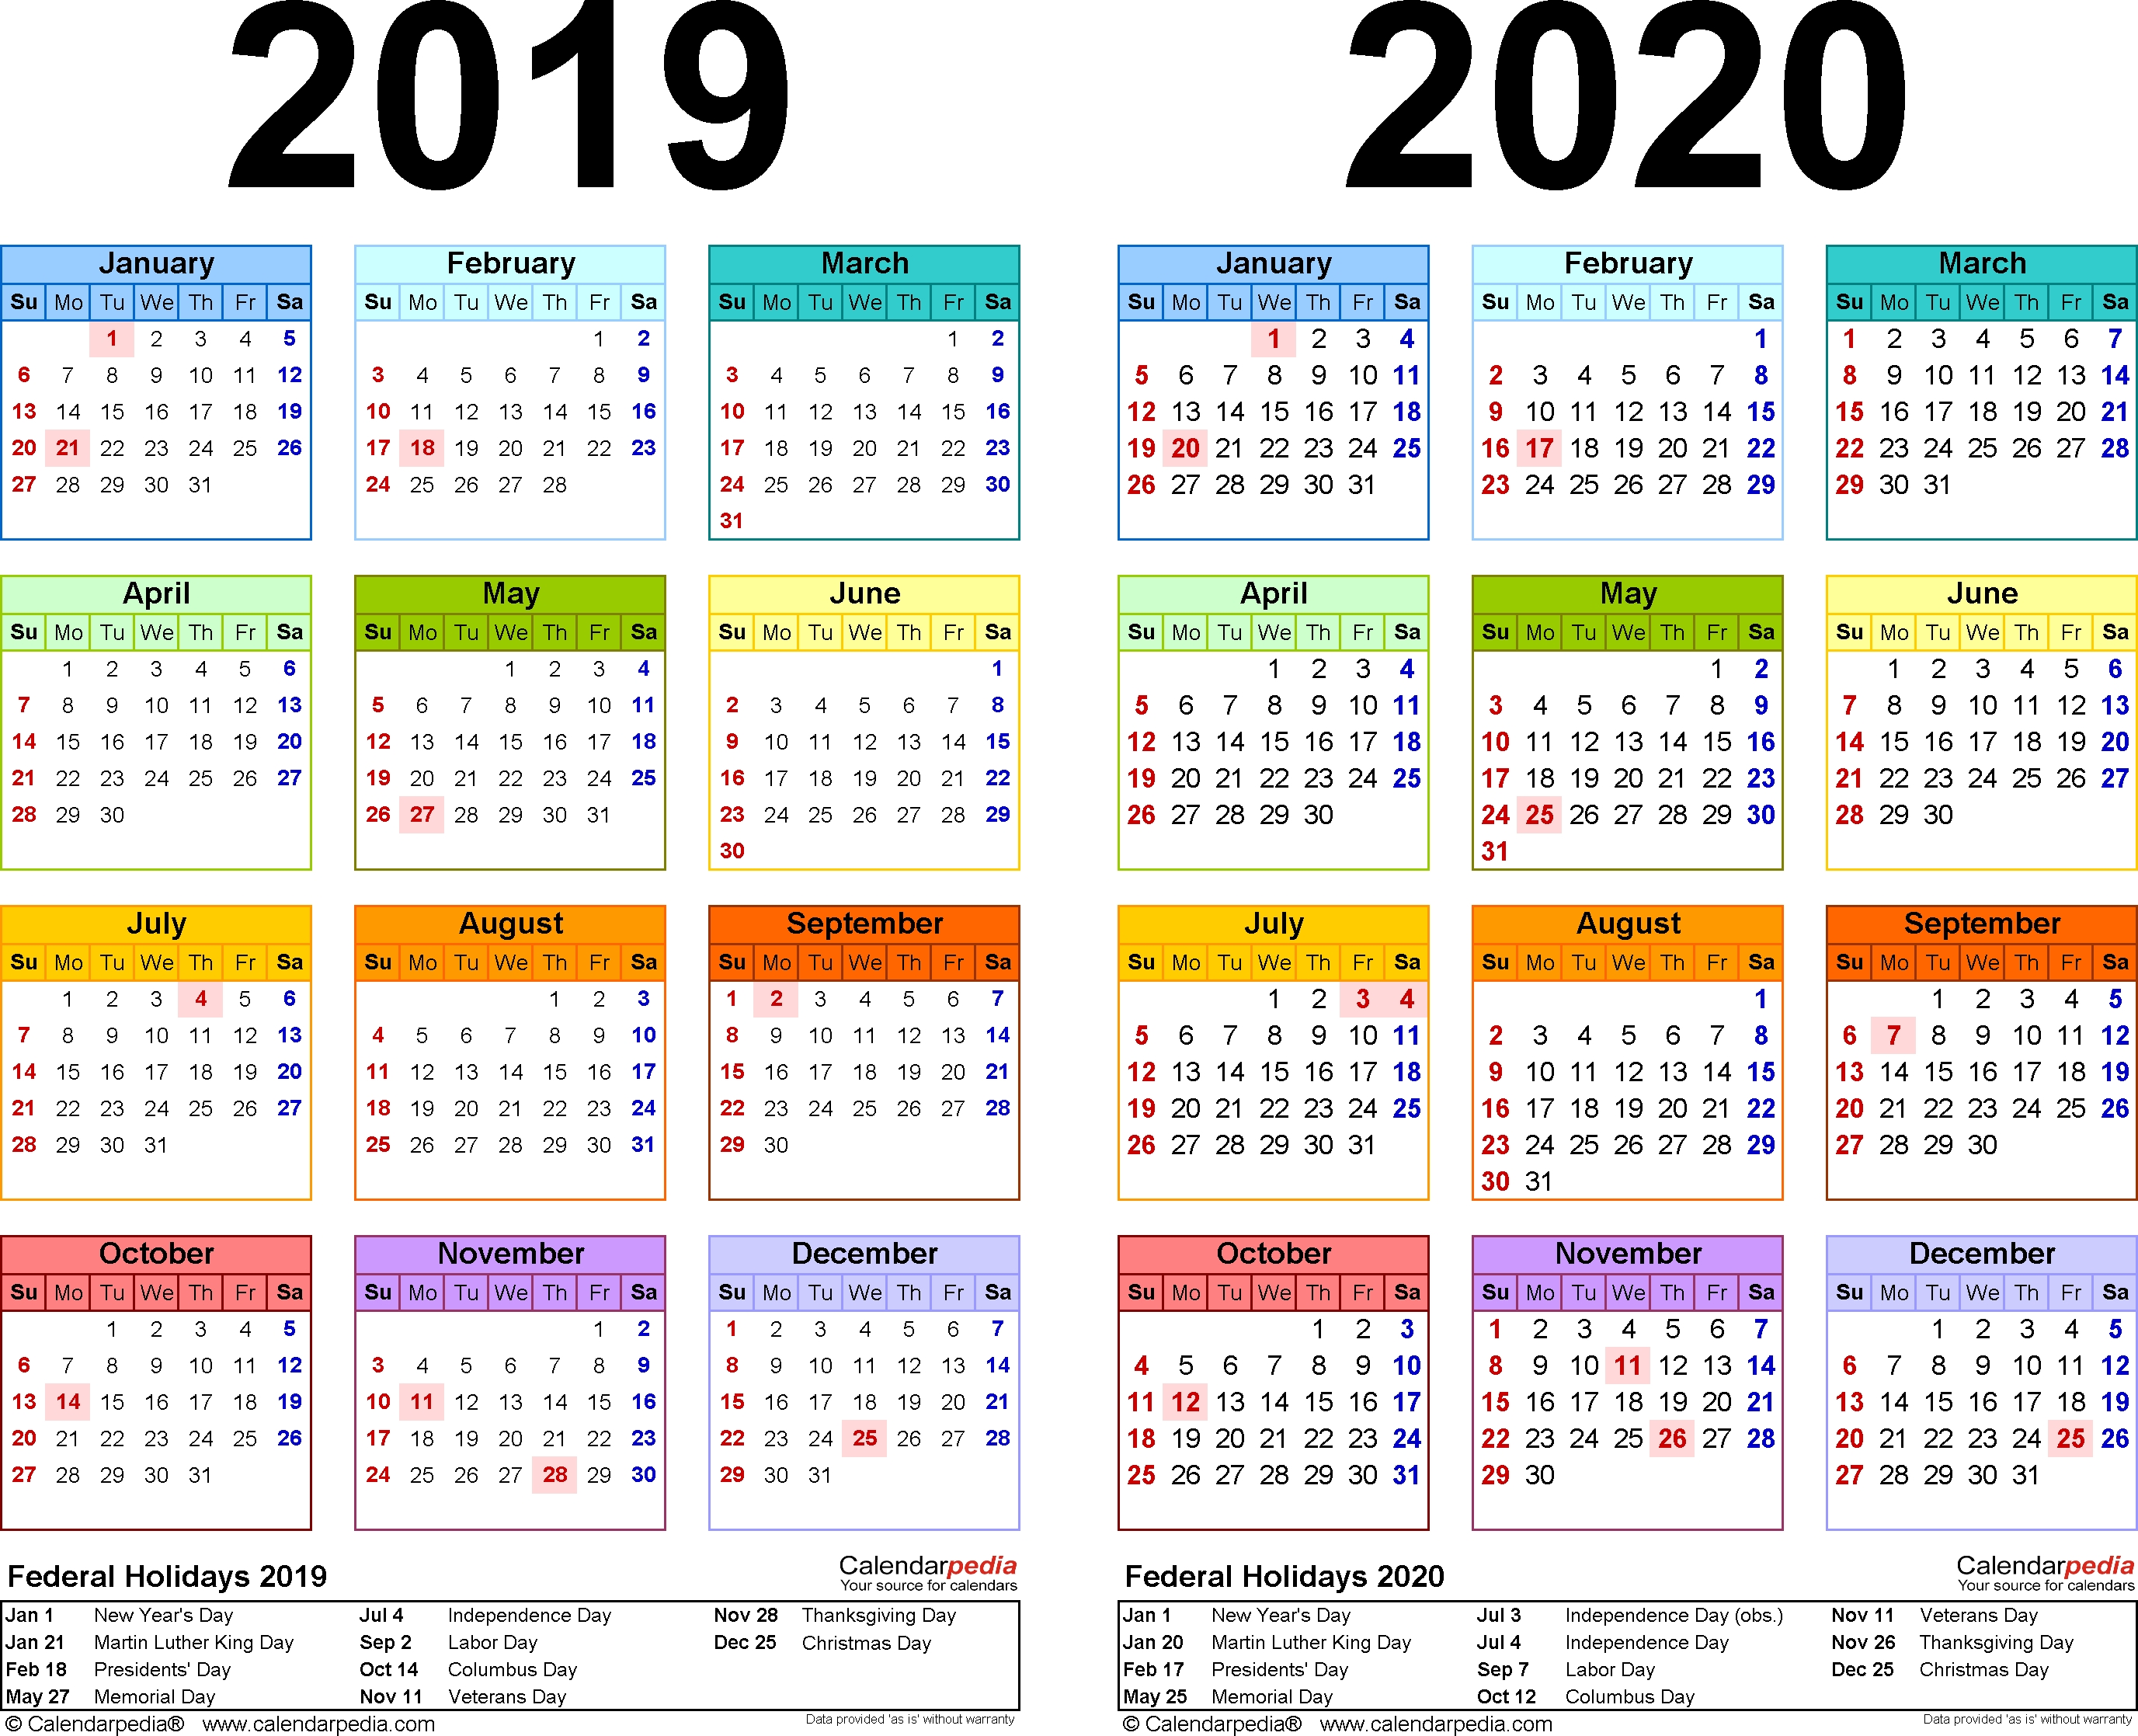 2019-2020 Calendar - Free Printable Two-Year Excel Calendars intended for Printable Custom Calendar 2019-2020